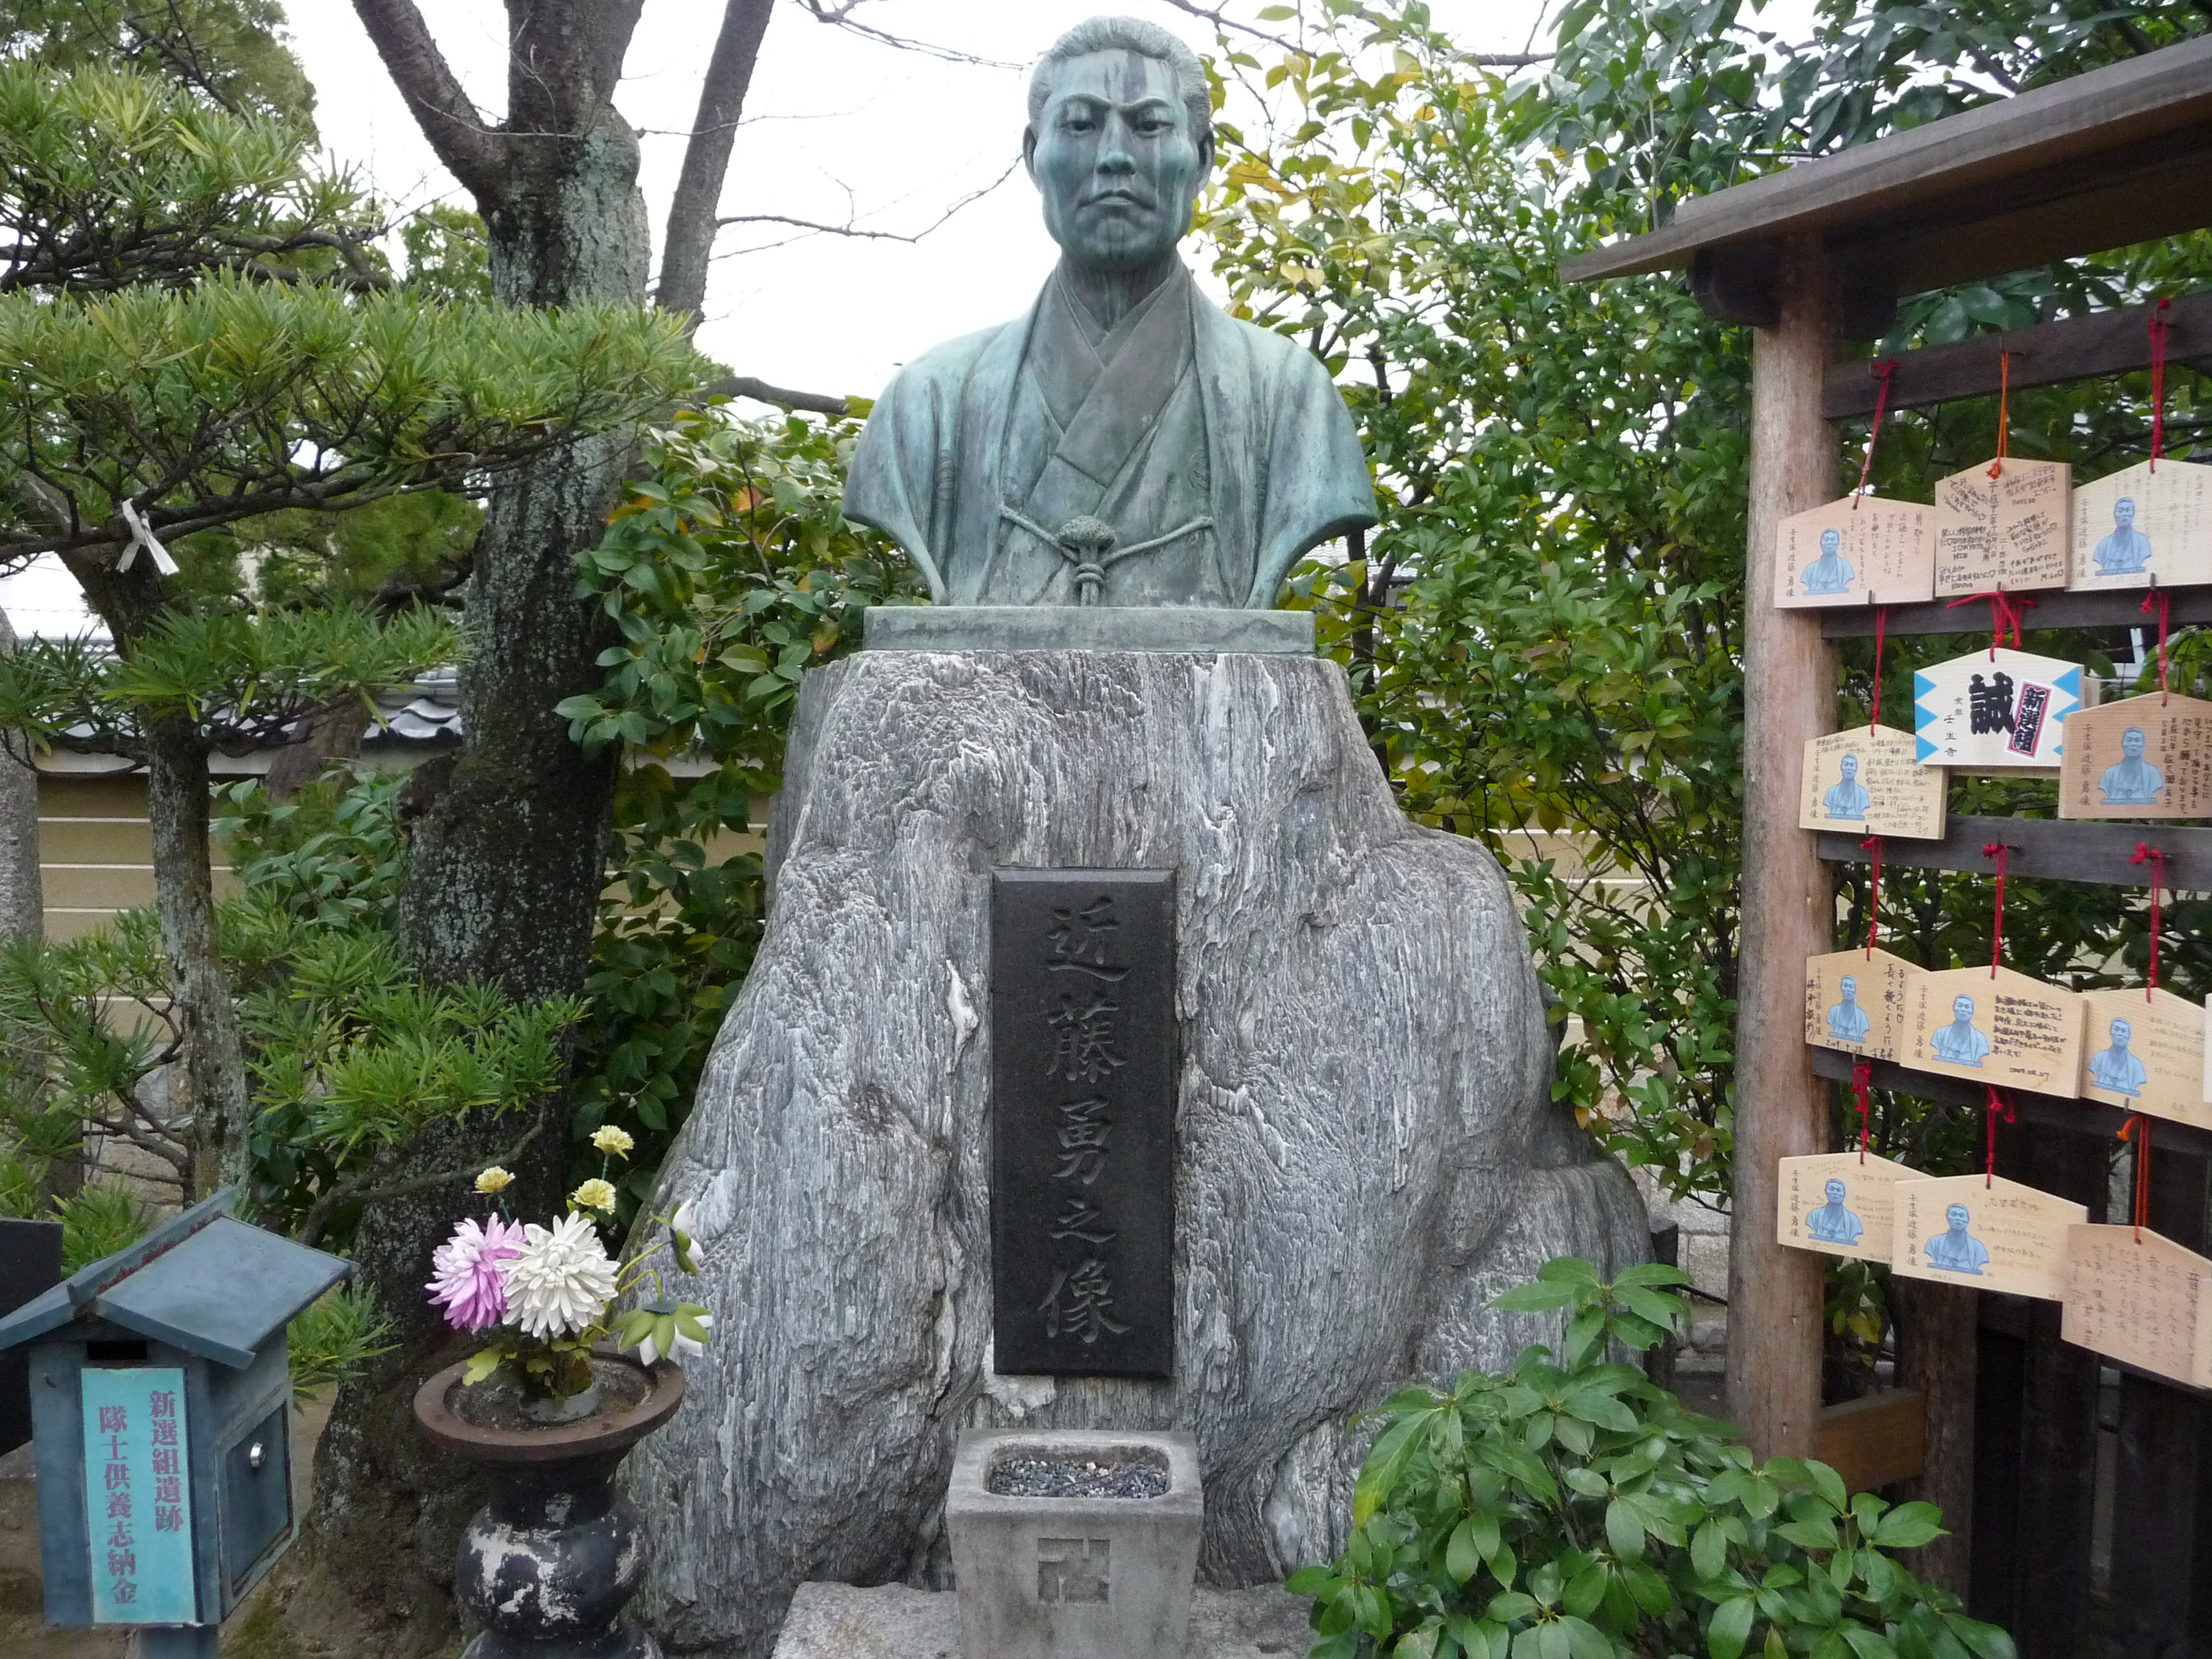 Kondo Isami, leader of Shinsengumi